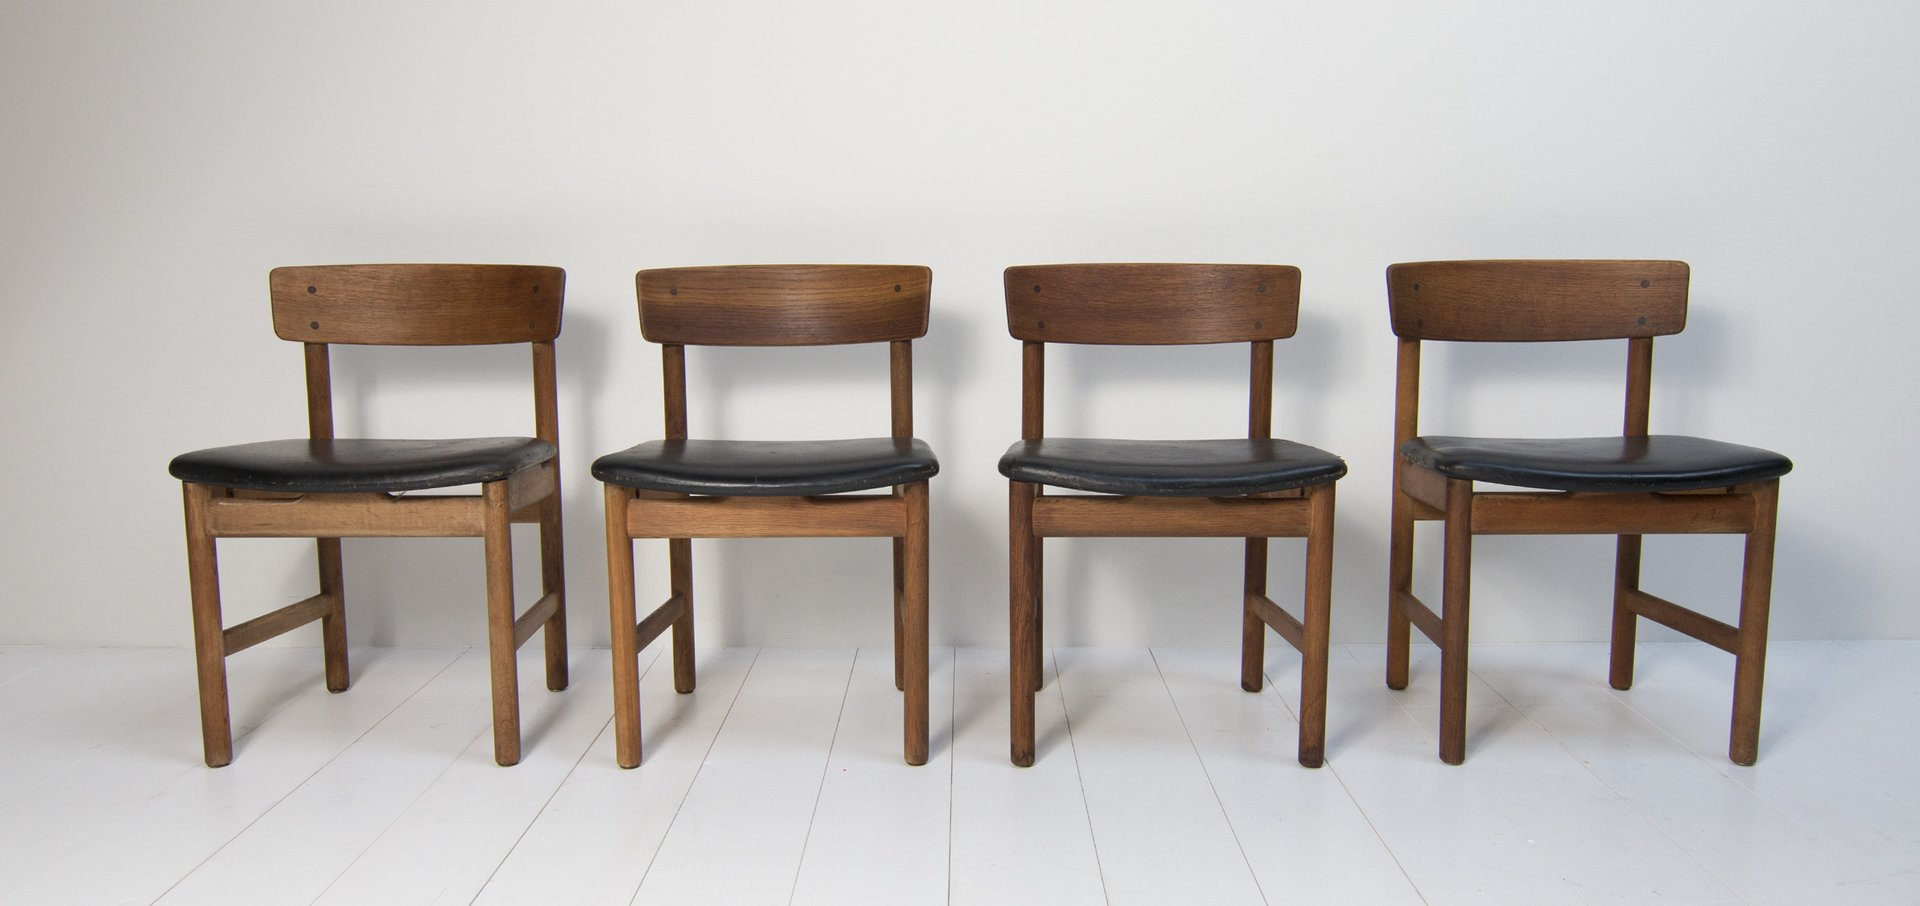 Dining Chairs By B Rge Mogensen For Fredericia Furniture